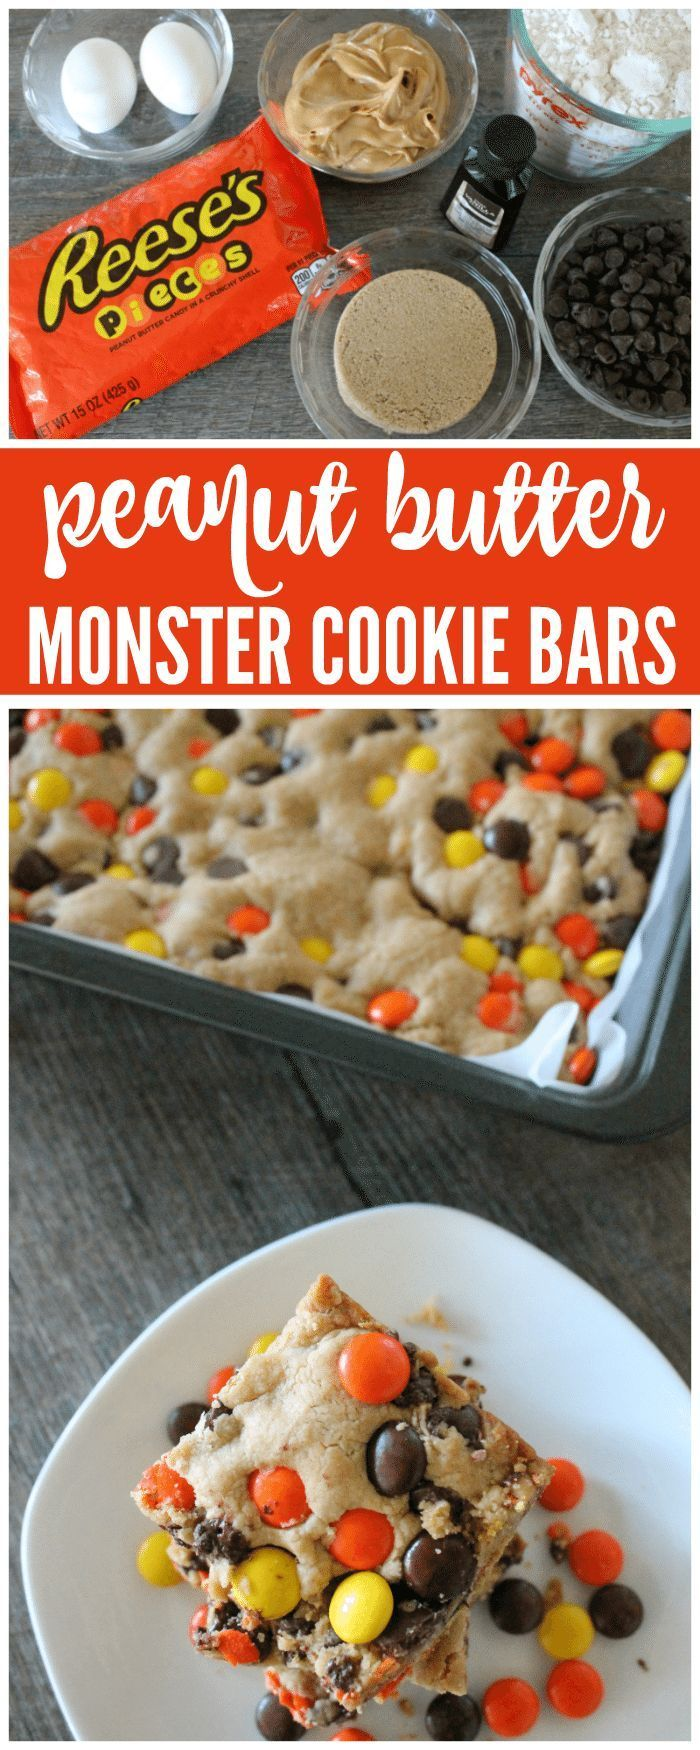 Butter Monster Cookie Bars are the perfect Summer Dessert full of Chocolate Peanut Butter goodness in a chewy cookie recipe.